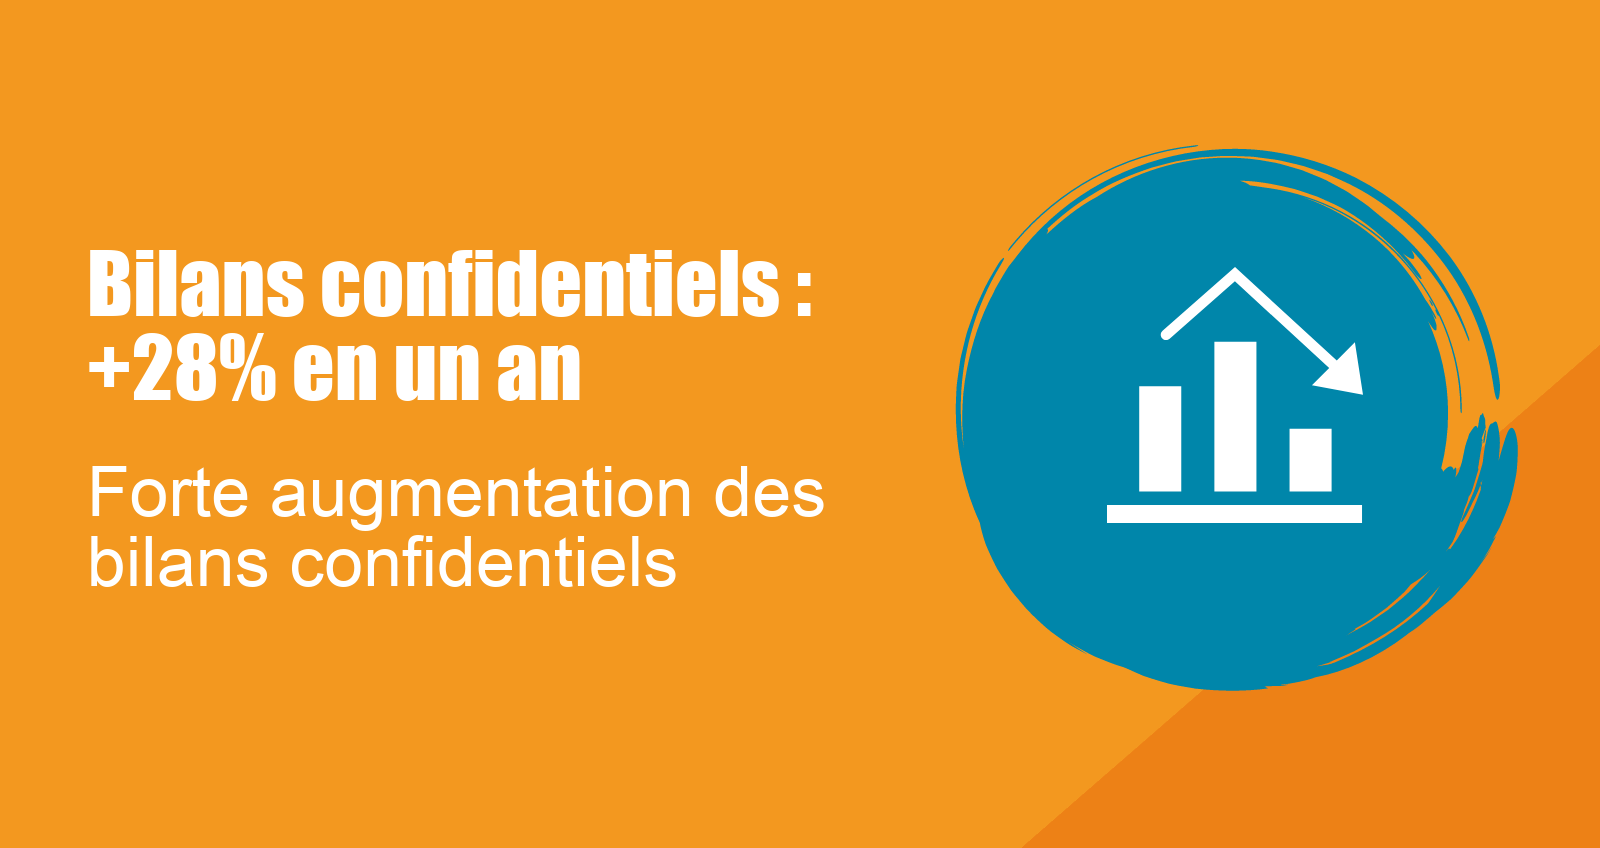 Bilans confidentiels : augmentation forte du nombre de bilans confidentiels en 2017